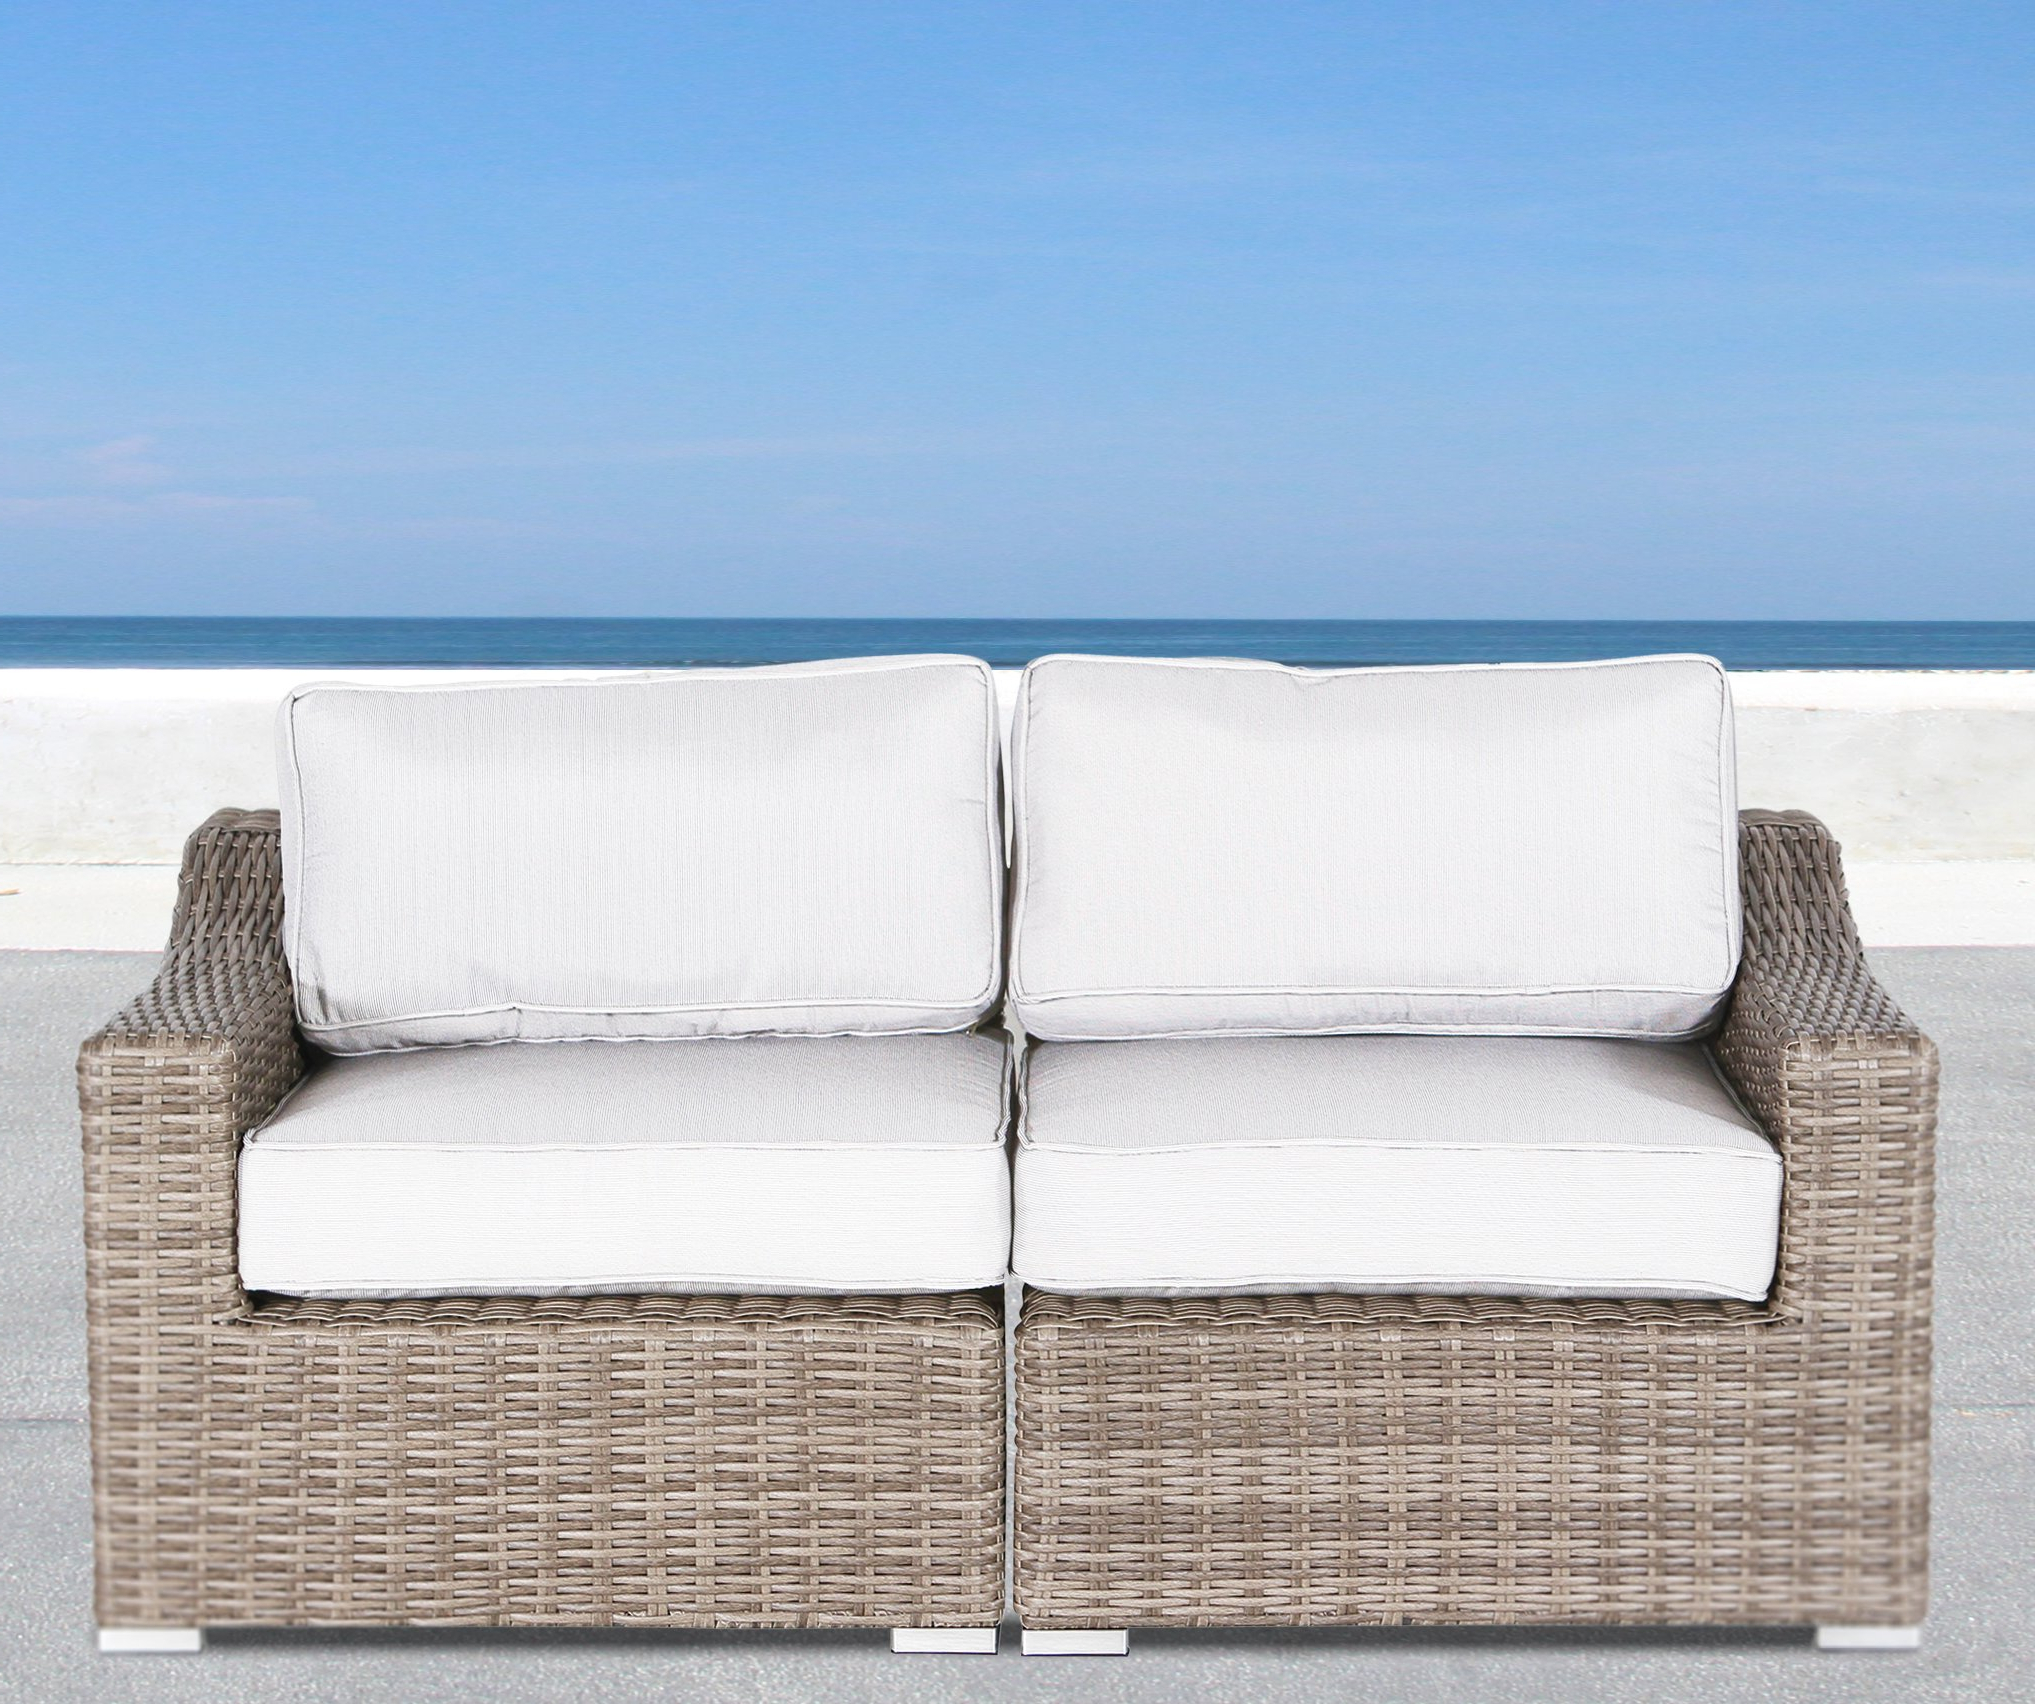 Most Recently Released Huddleson Loveseat With Cushion With Huddleson Loveseats With Cushion (View 3 of 20)